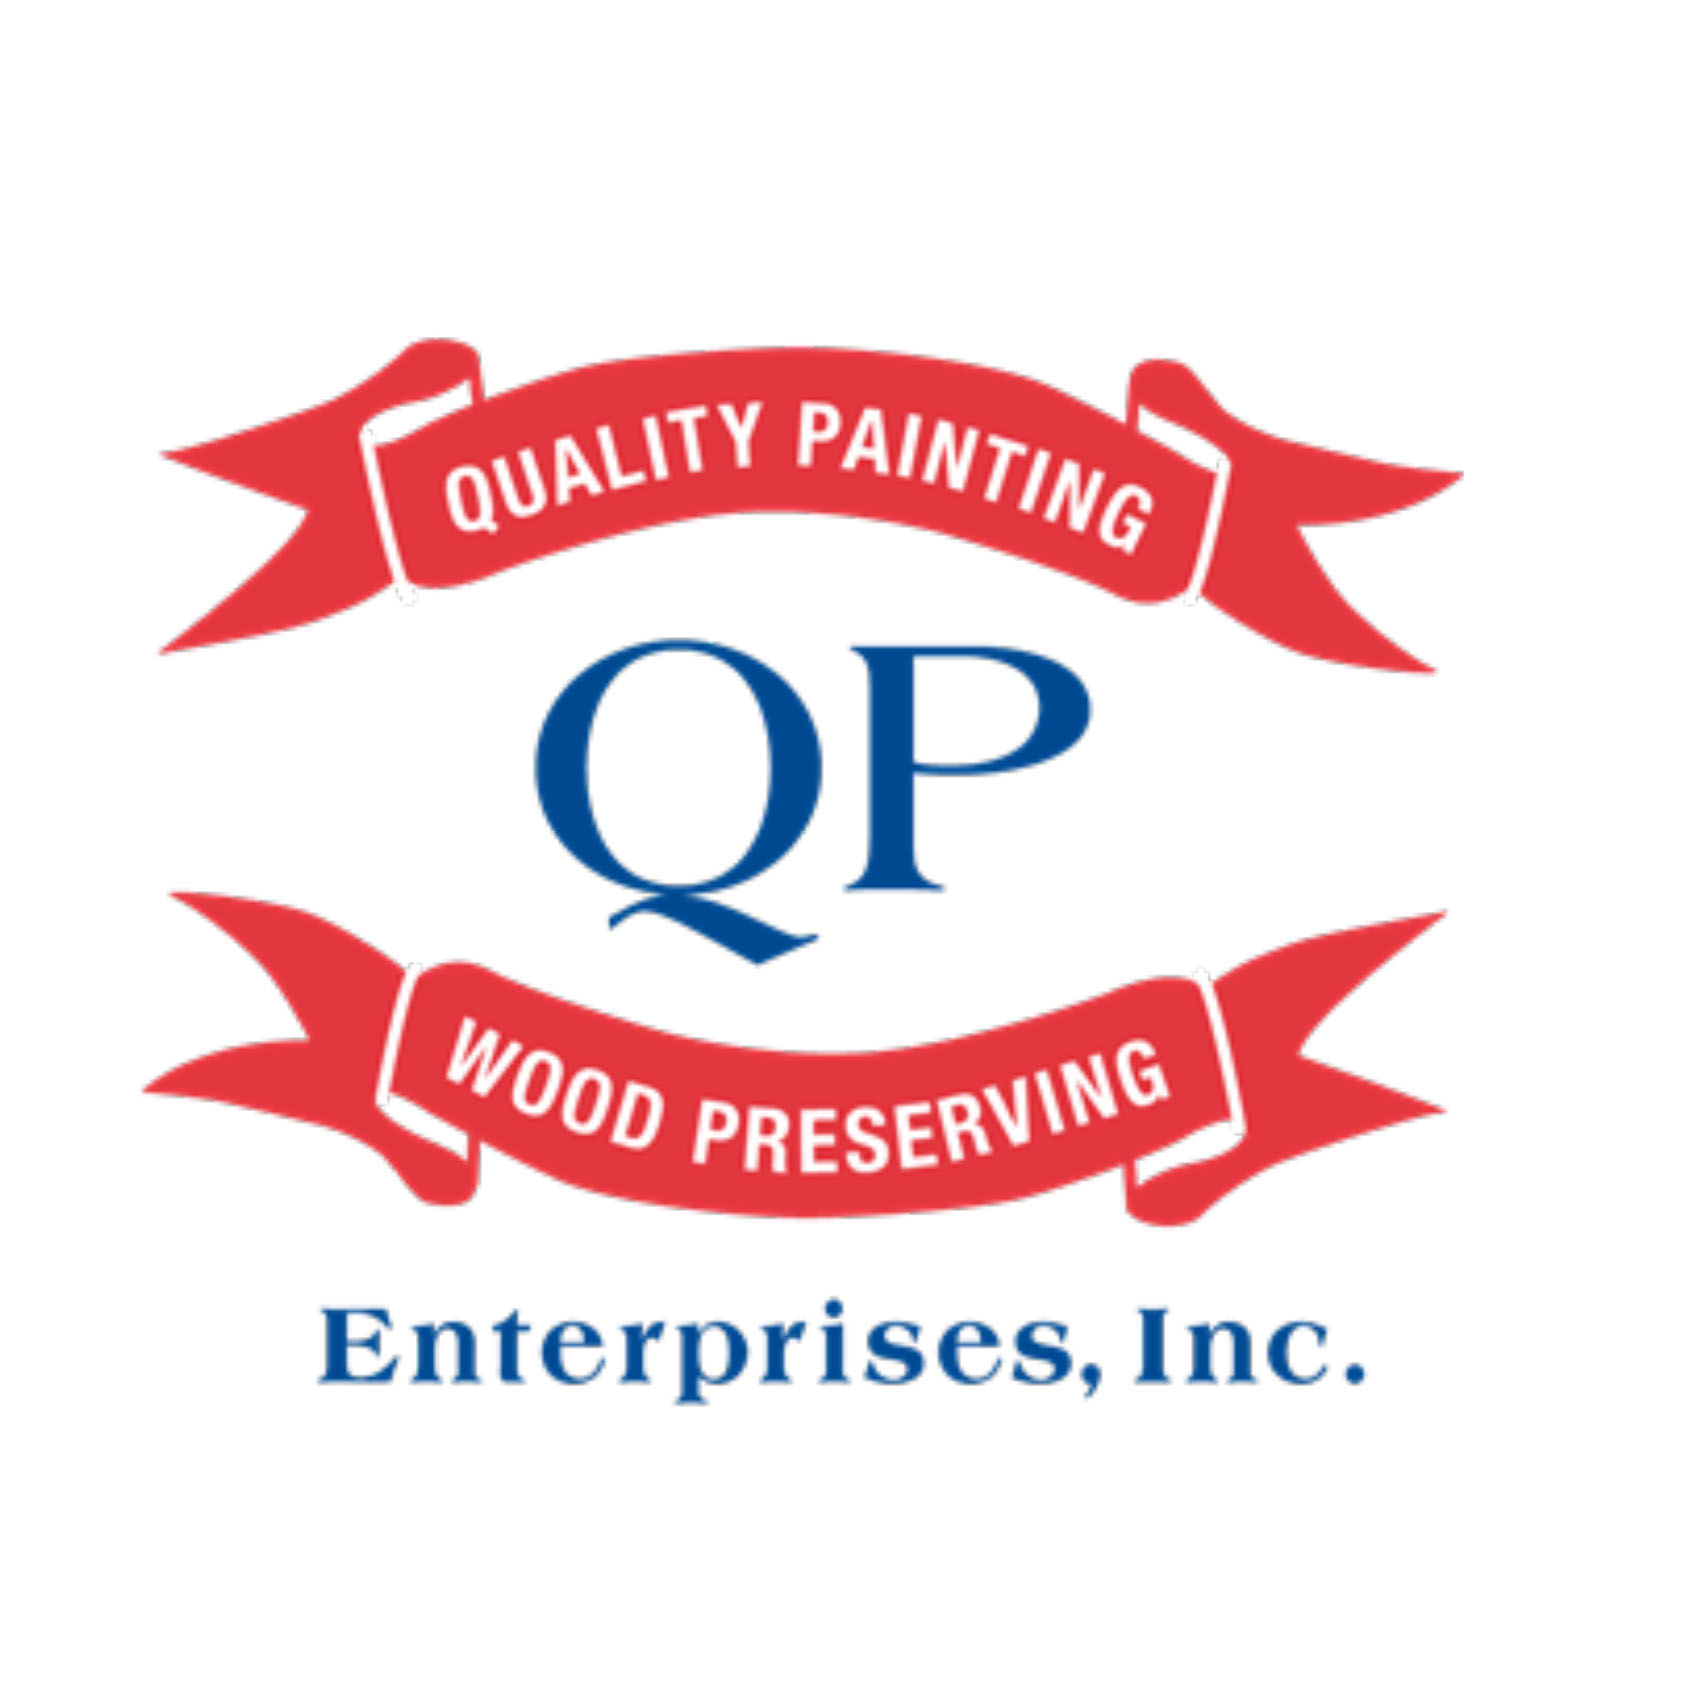 Quality Painting and Wood Preserving